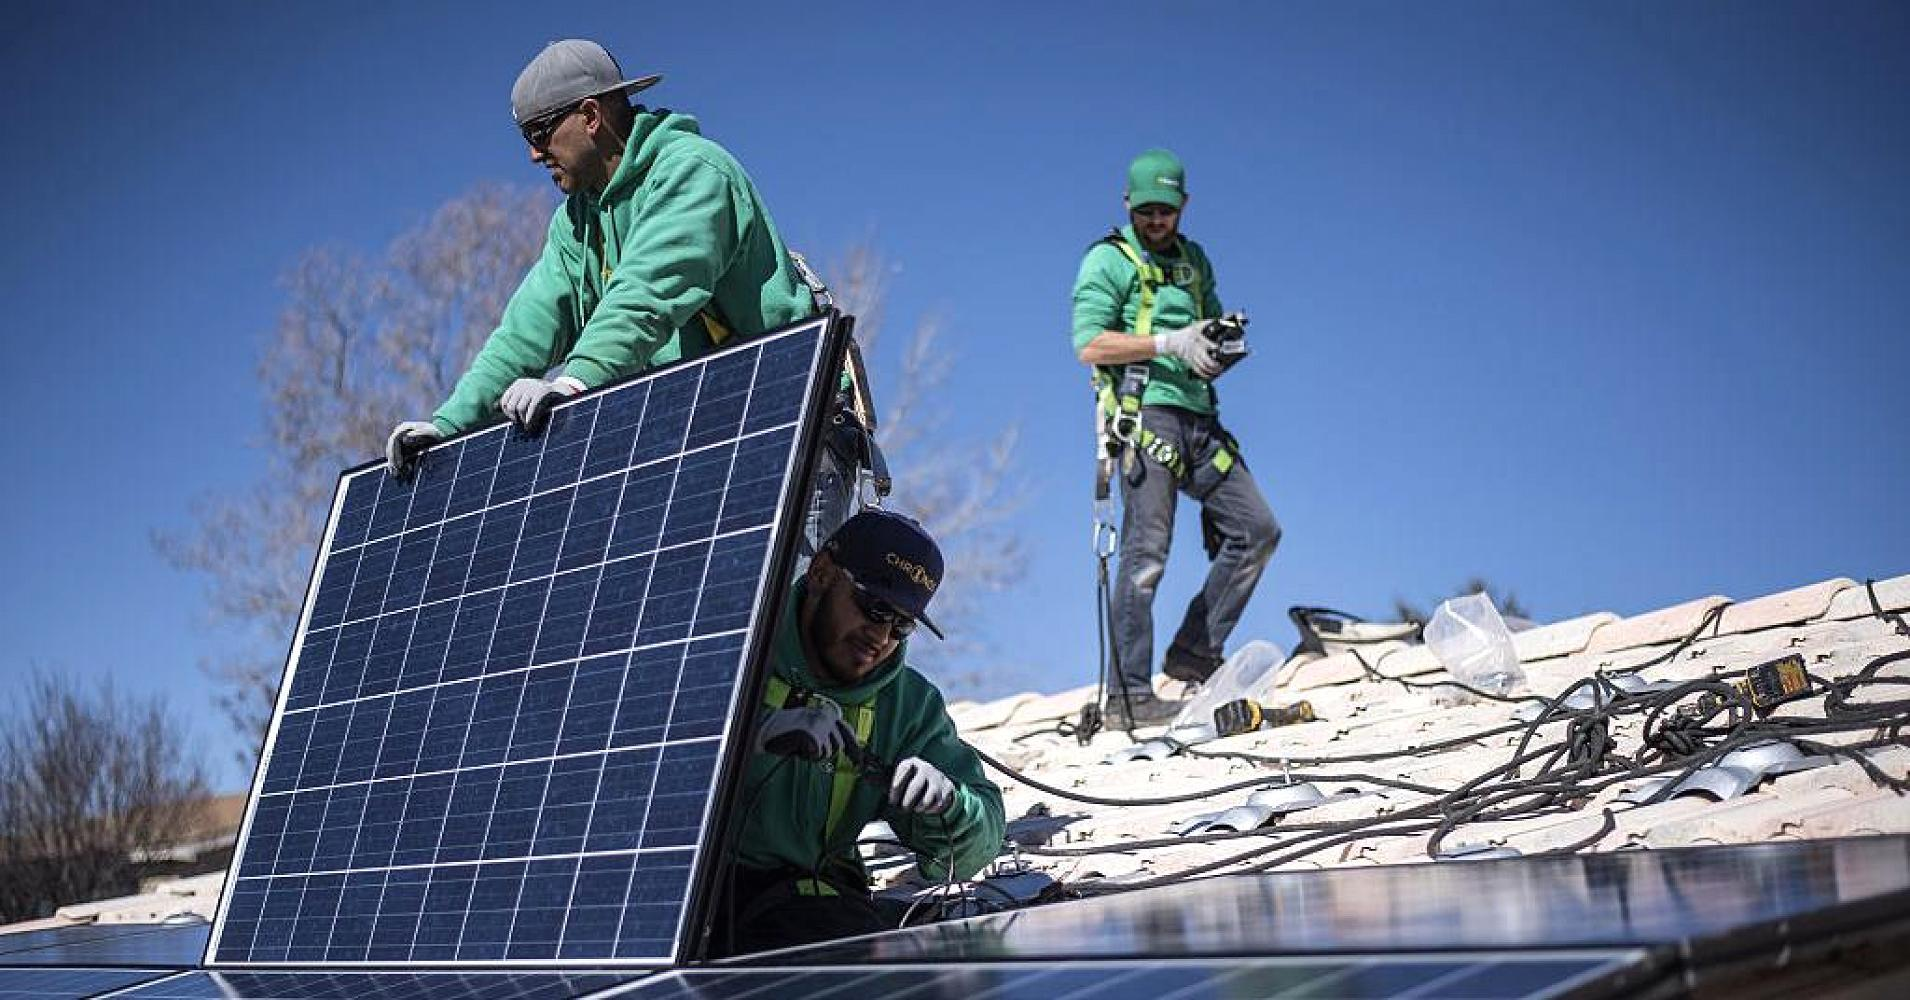 SEC probing Tesla's SolarCity divsion and Sunrun